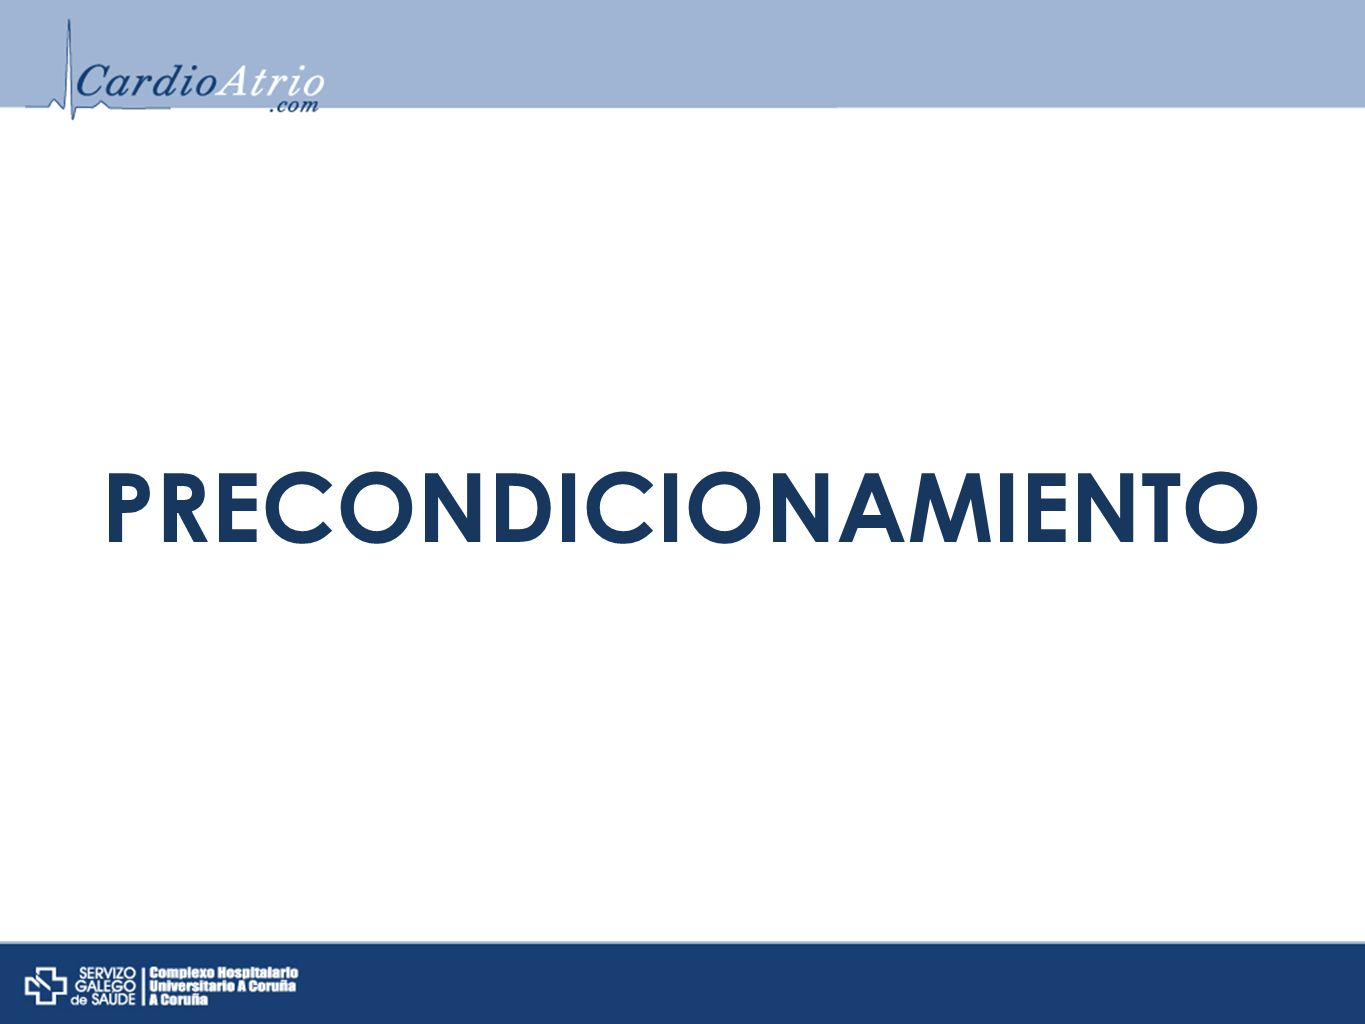 PRECONDICIONAMIENTO